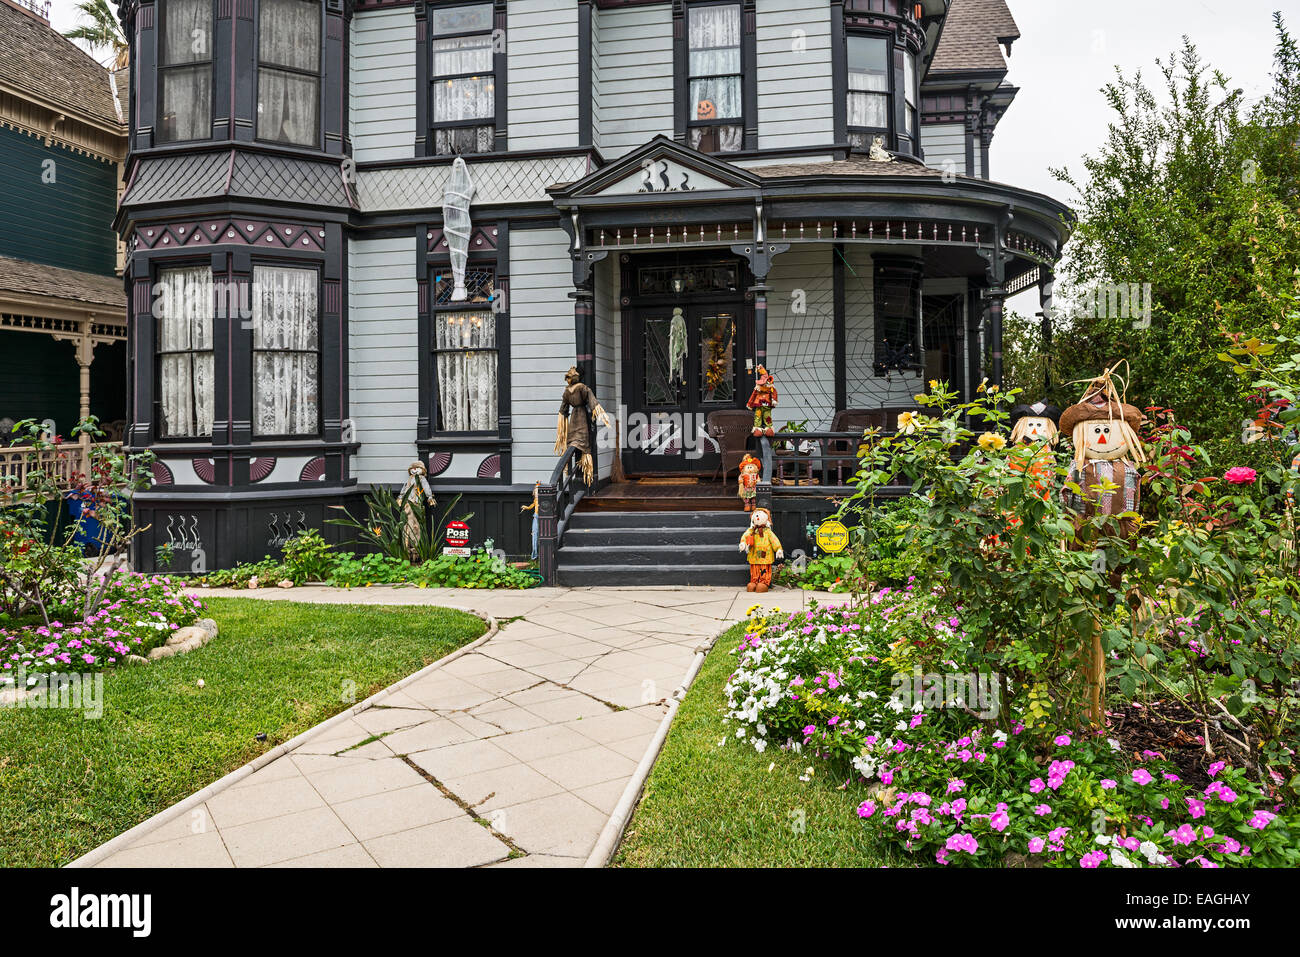 The beautiful Victorian Houses on Carroll Avenue in Echo Park. - Stock Image